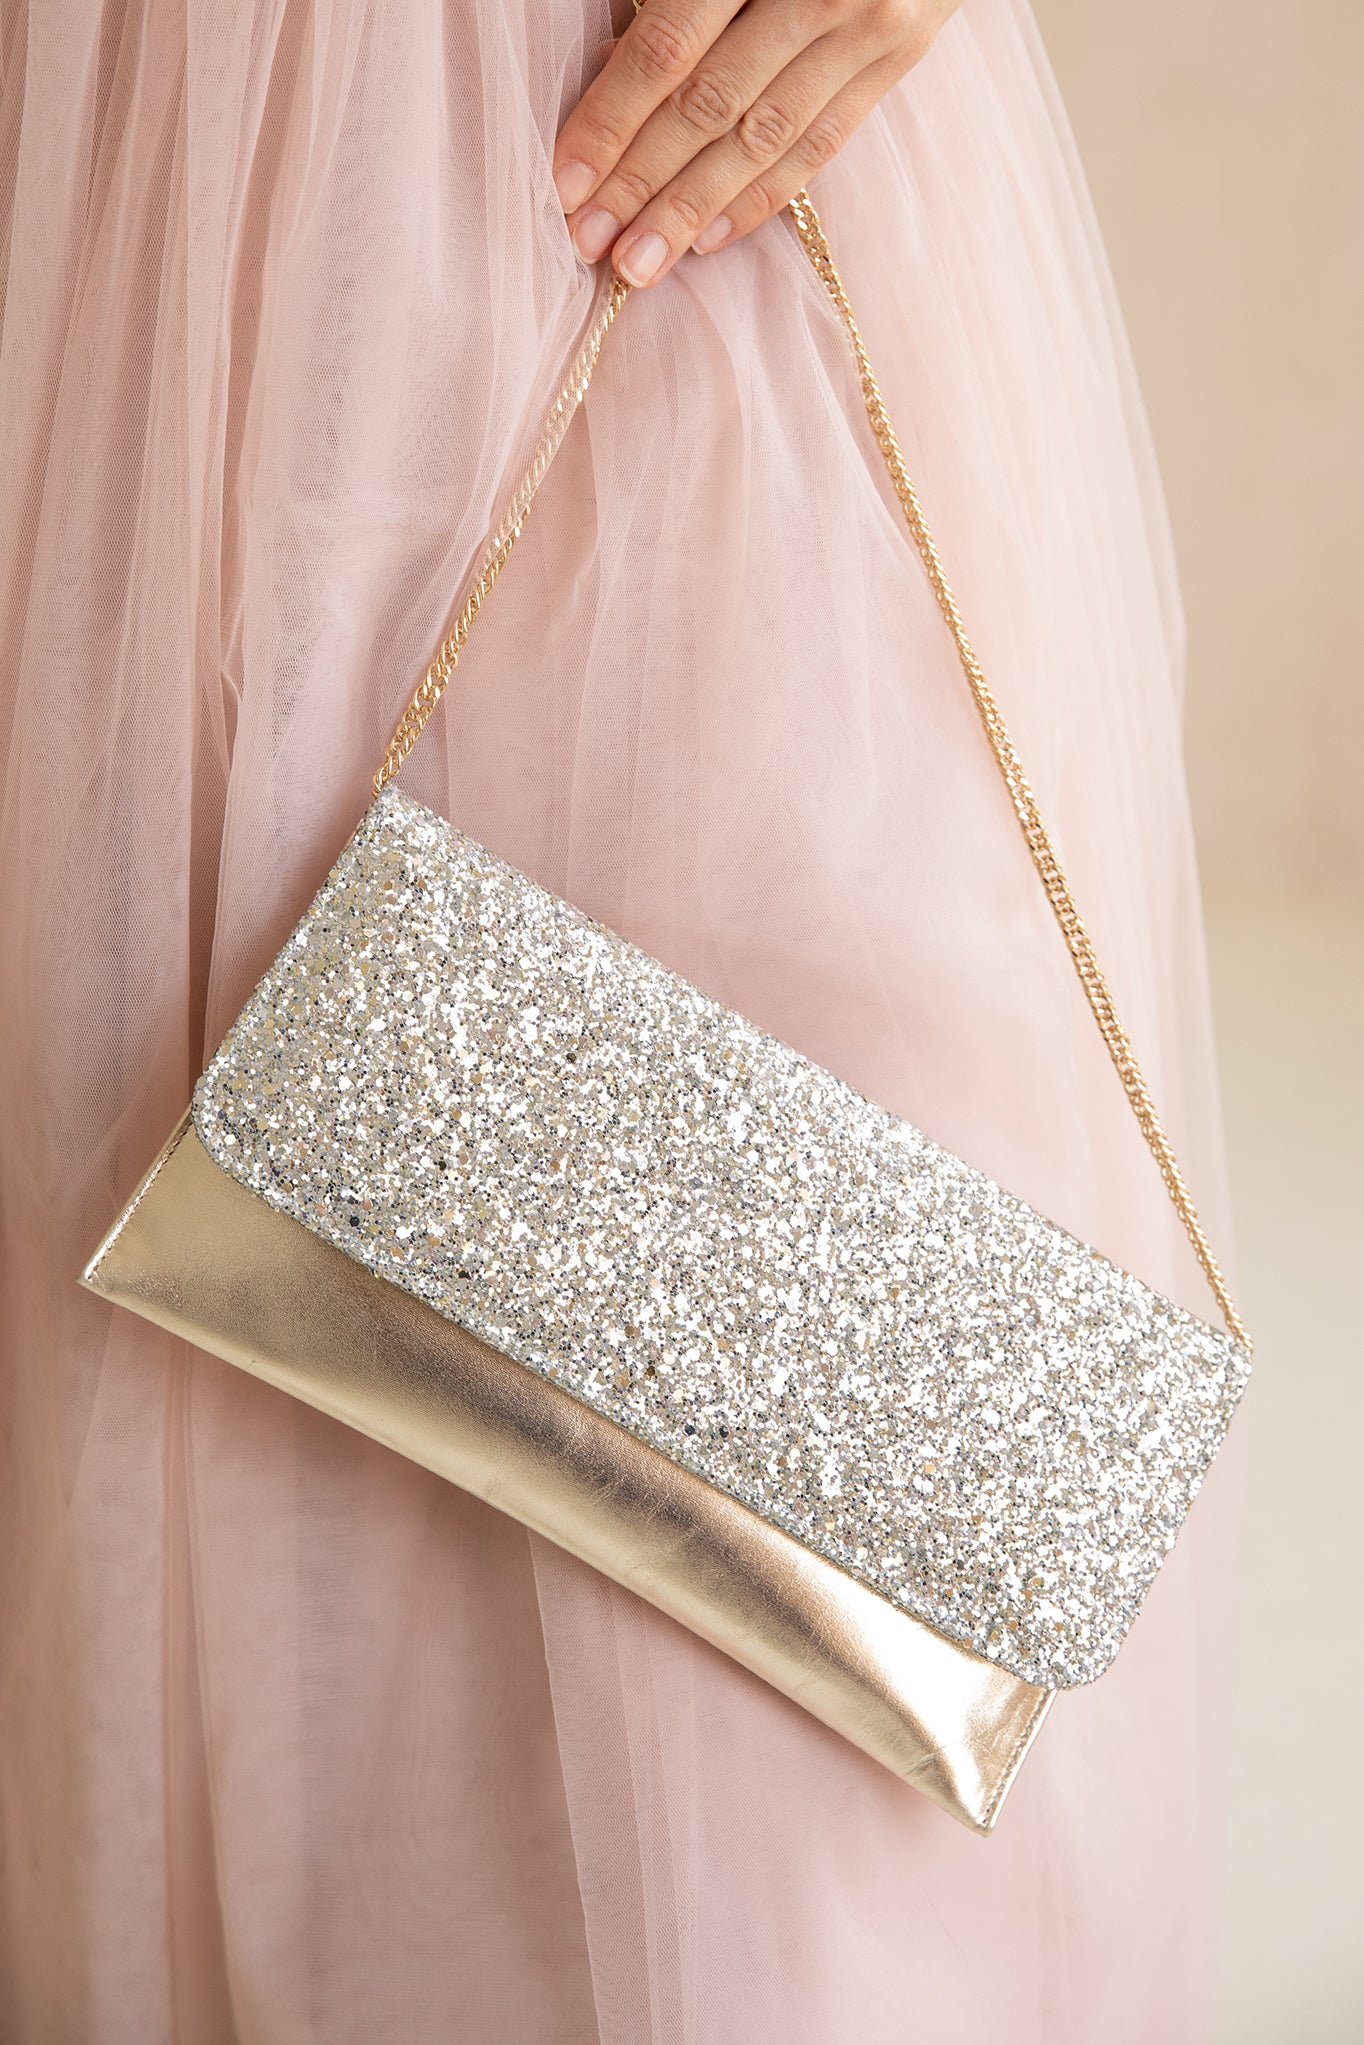 Rachel Simpson Skye glitter clutch bag